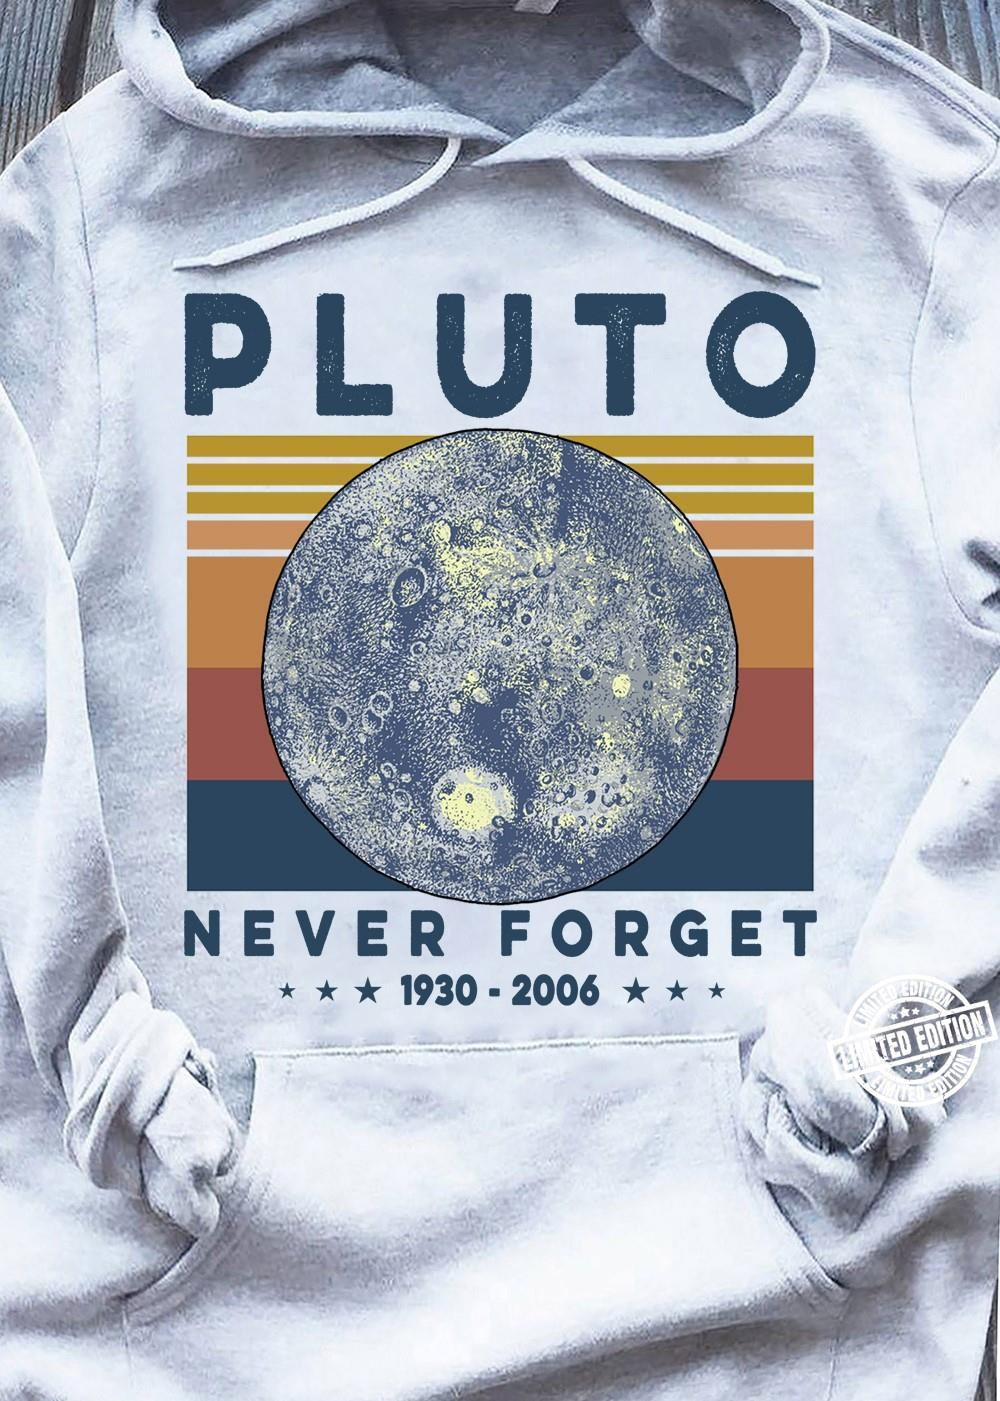 Pluto never forget 1930-2006 shirt